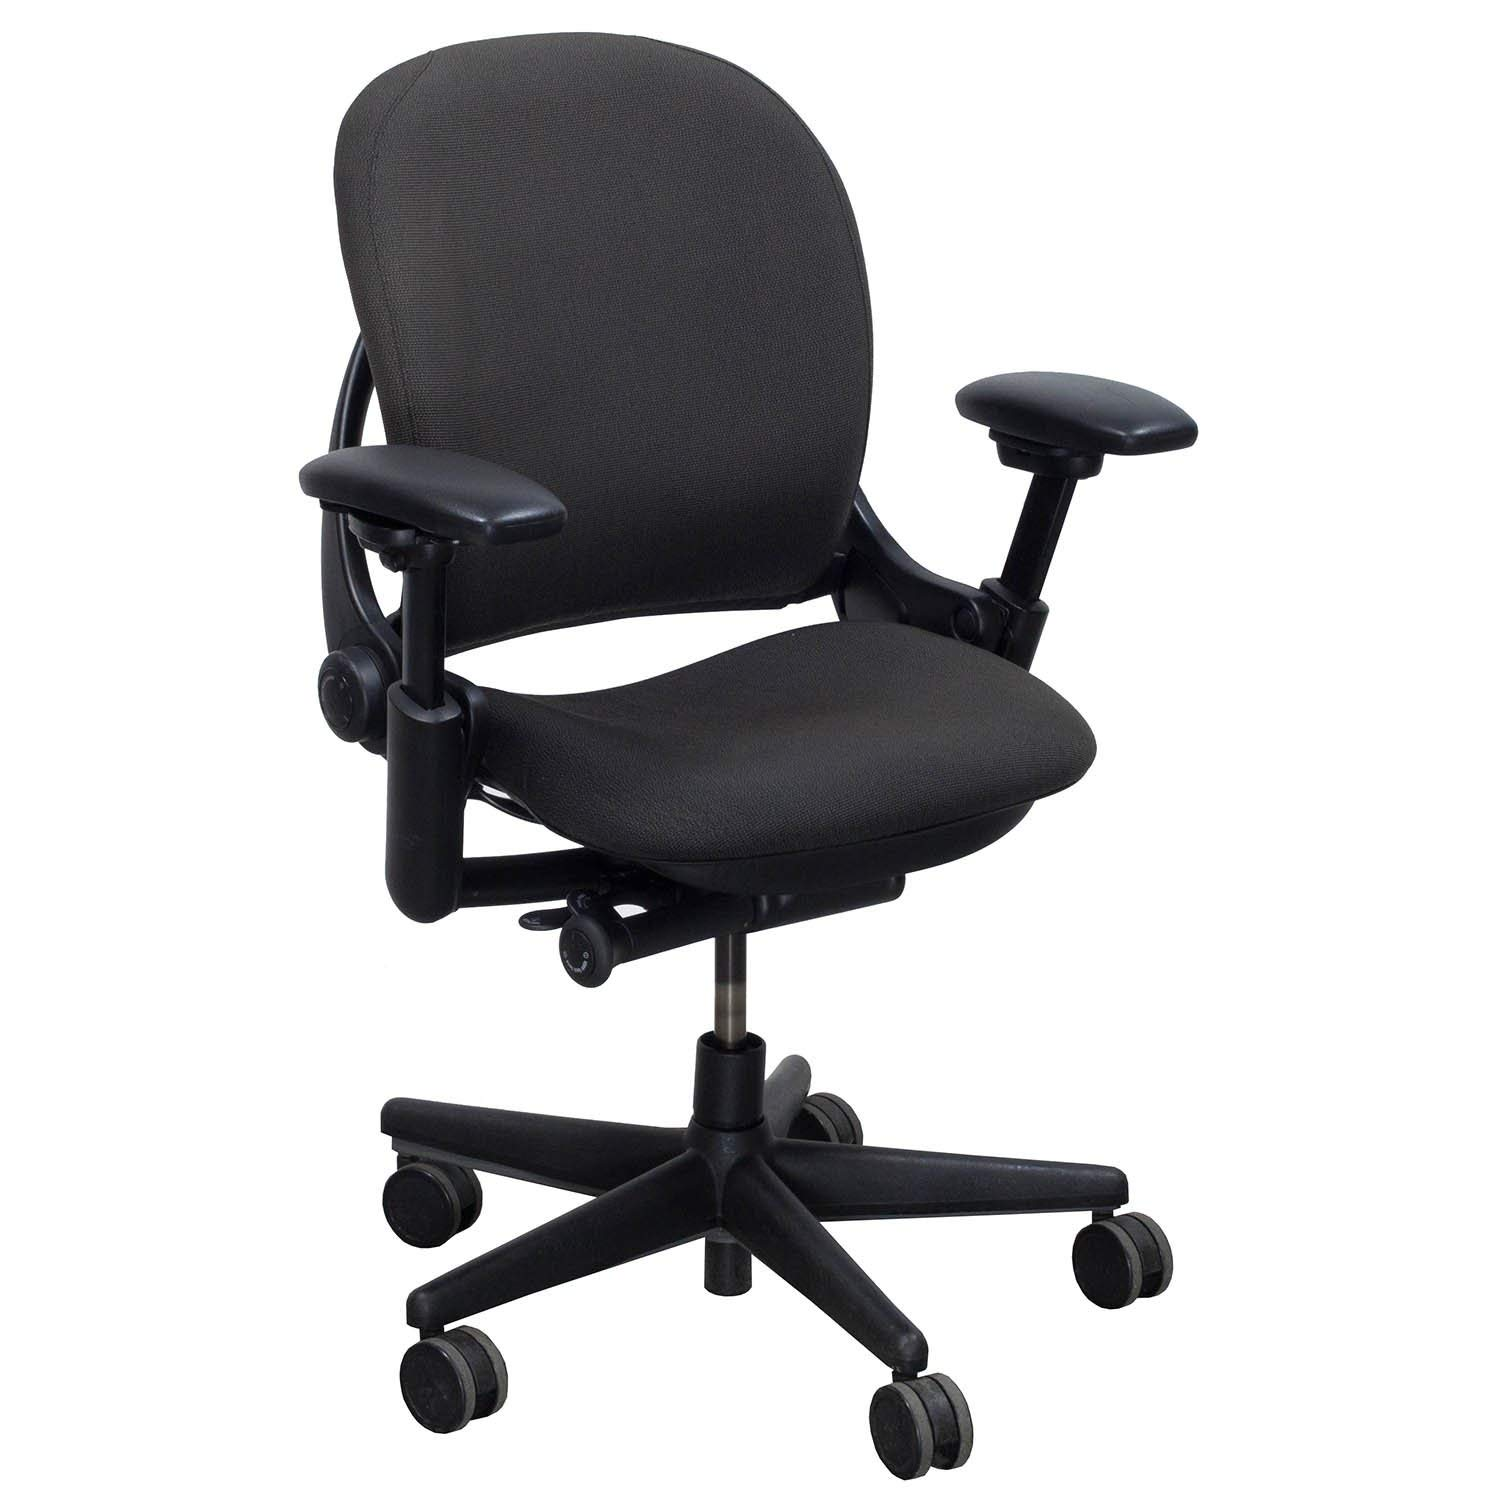 Steelcase Chair Parts Cheap Steelcase Parts Find Steelcase Parts Deals On Line At